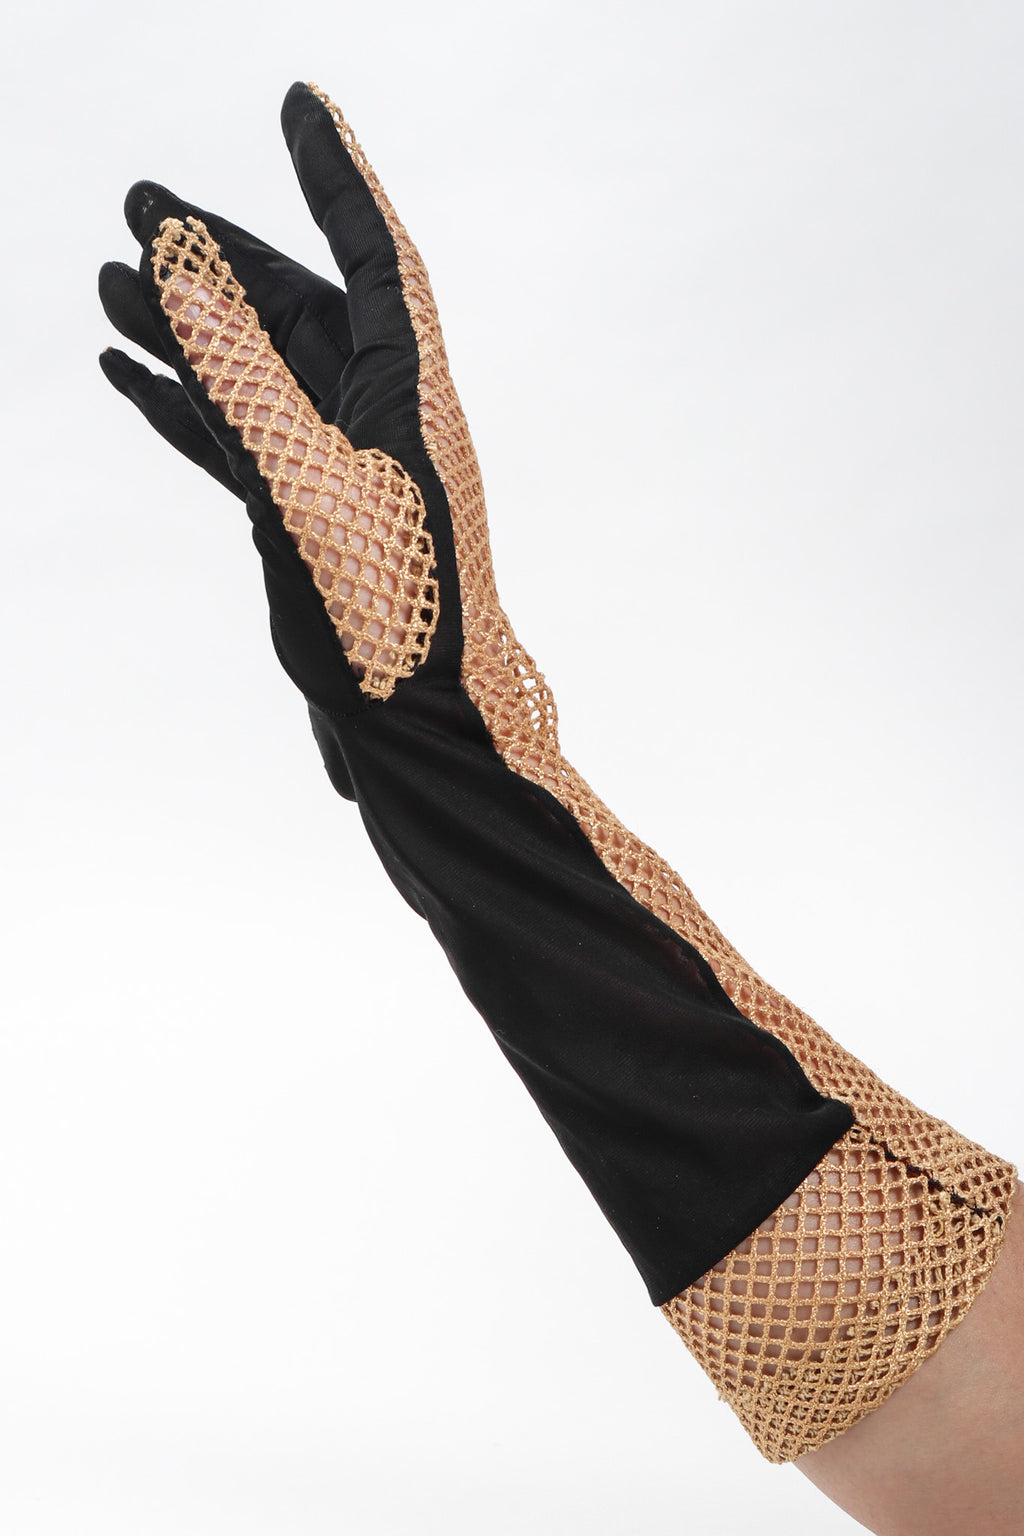 Recess Los Angeles Vintage Kayser Sheer Net Gloves